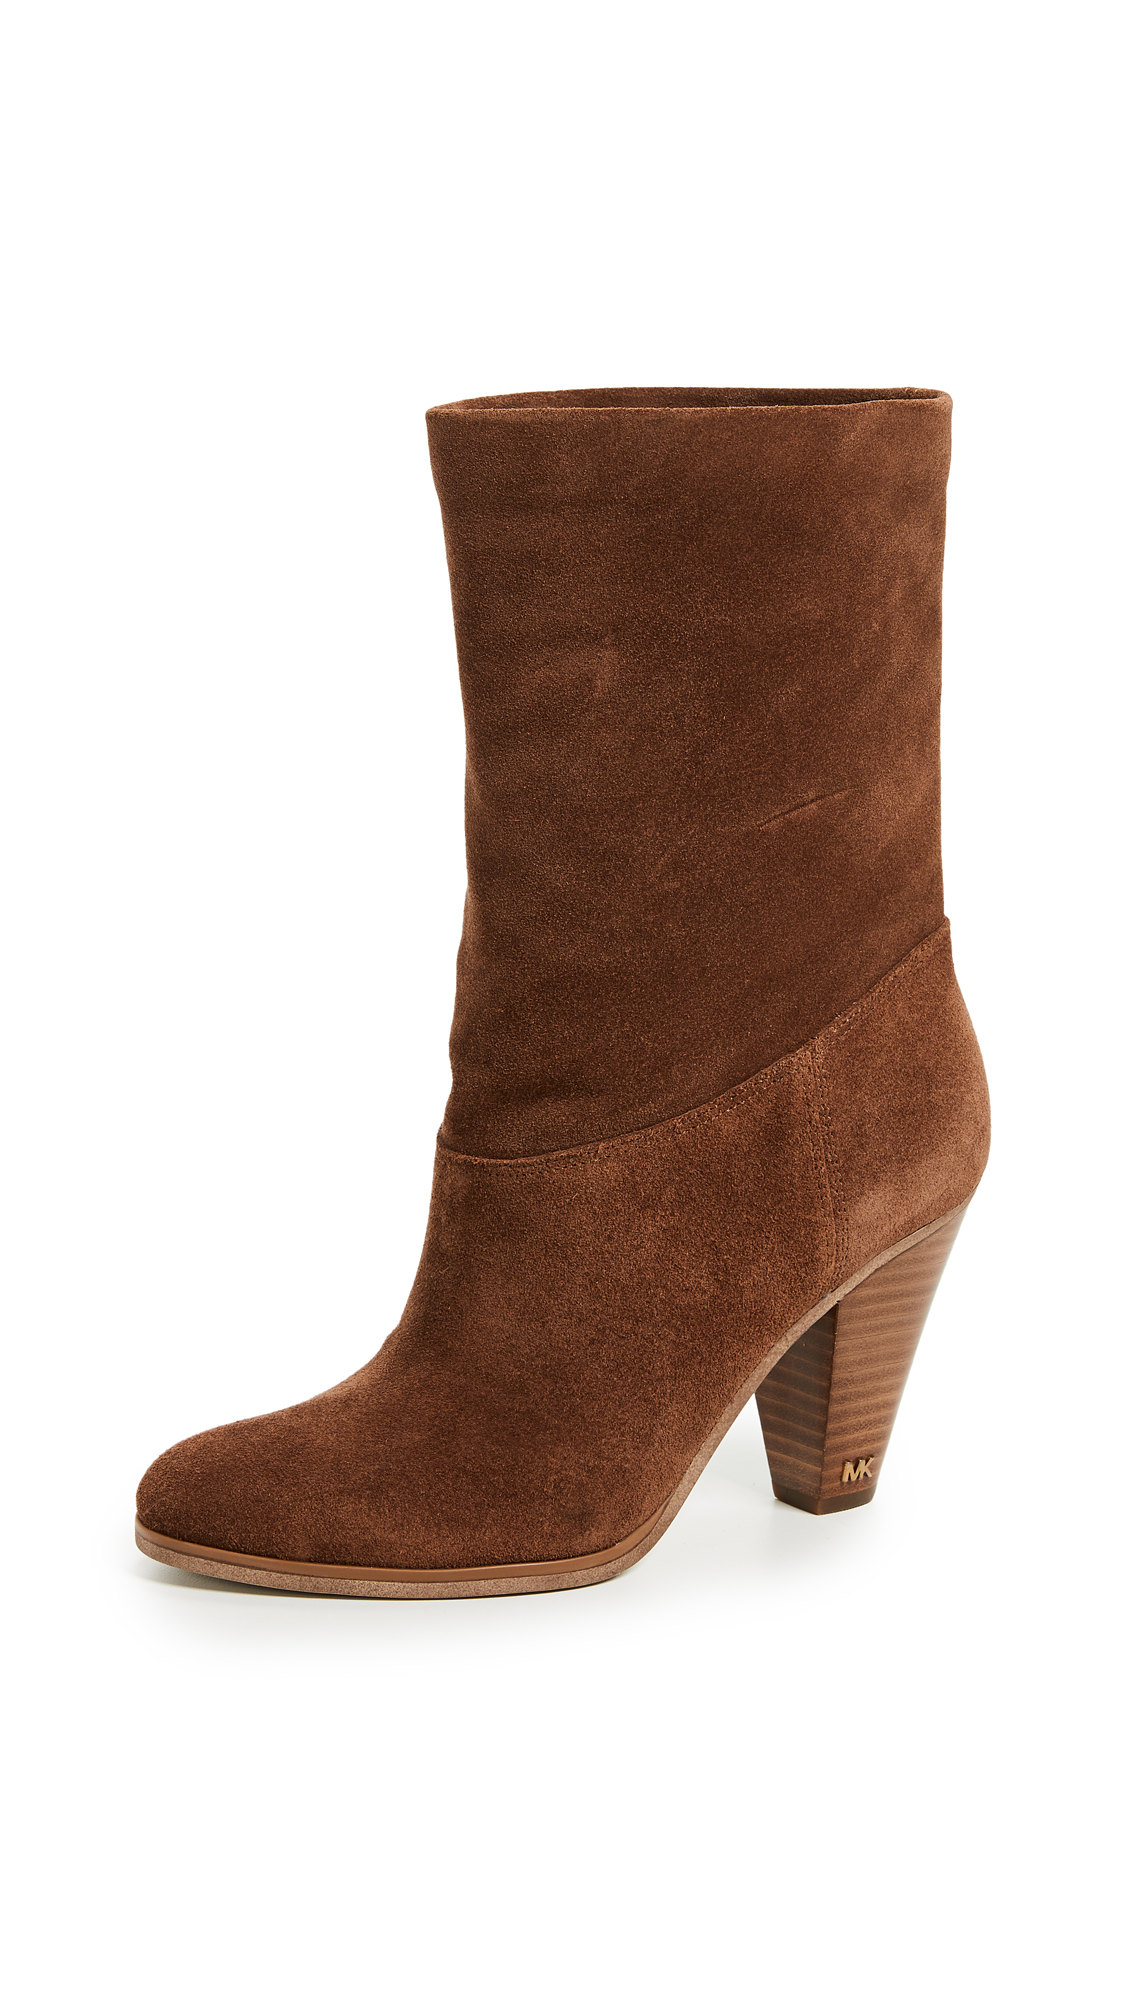 a72e2818fbc9 Michael Kors Suede - Buy Best Michael Kors Suede from Fashion Influencers